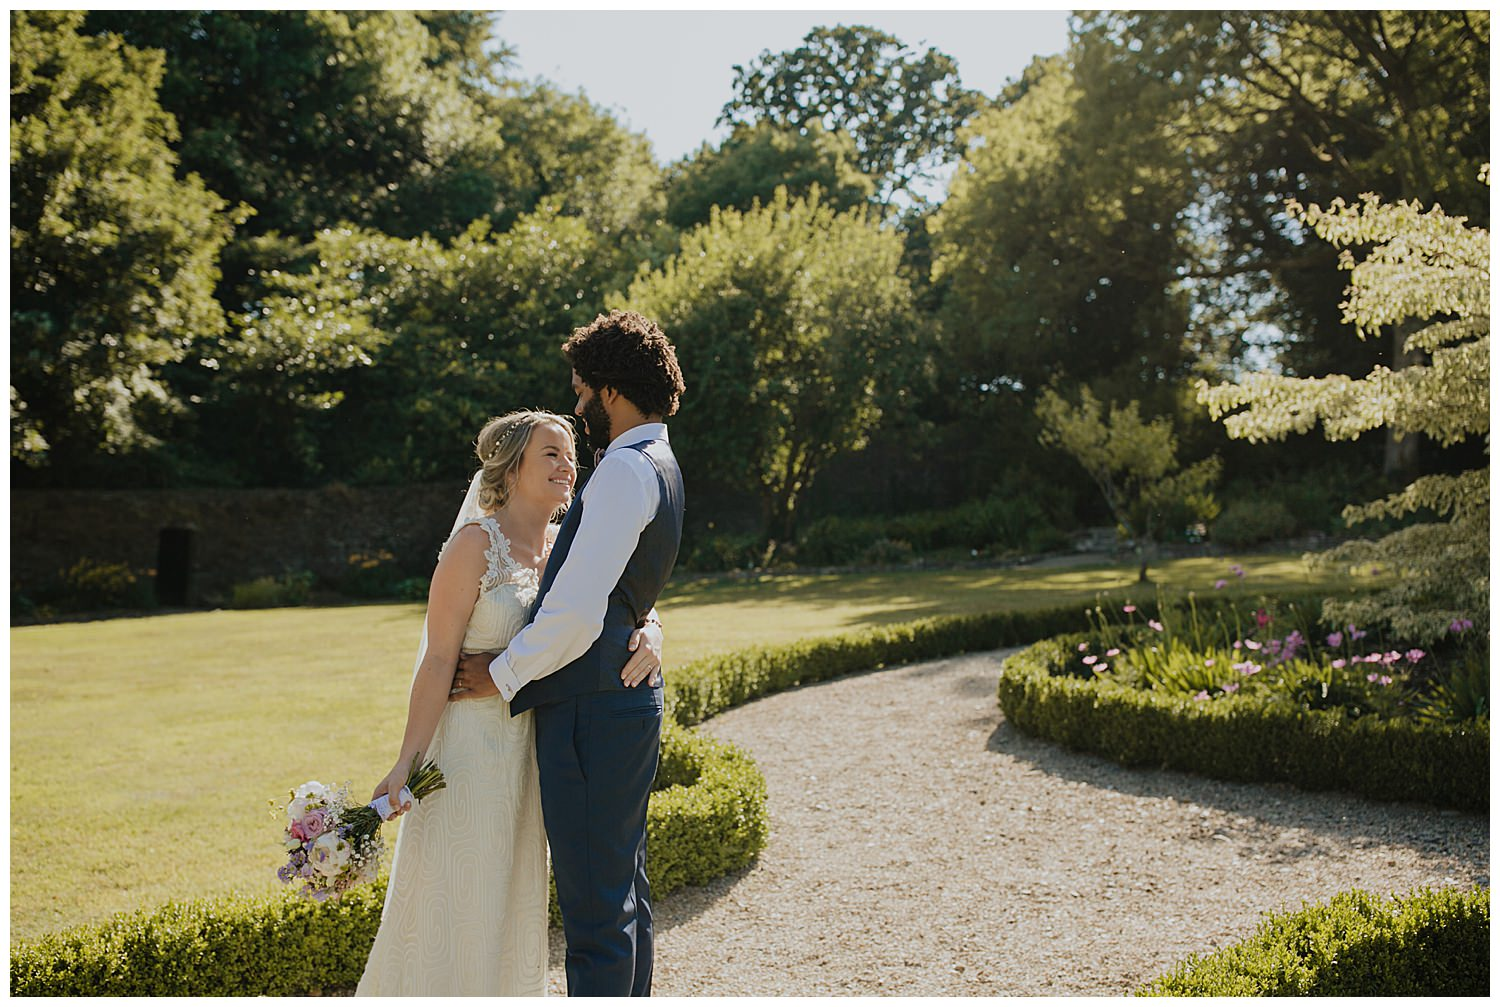 j&r_ballybeg_house_wedding_photographer_livia_figueiredo_509.jpg